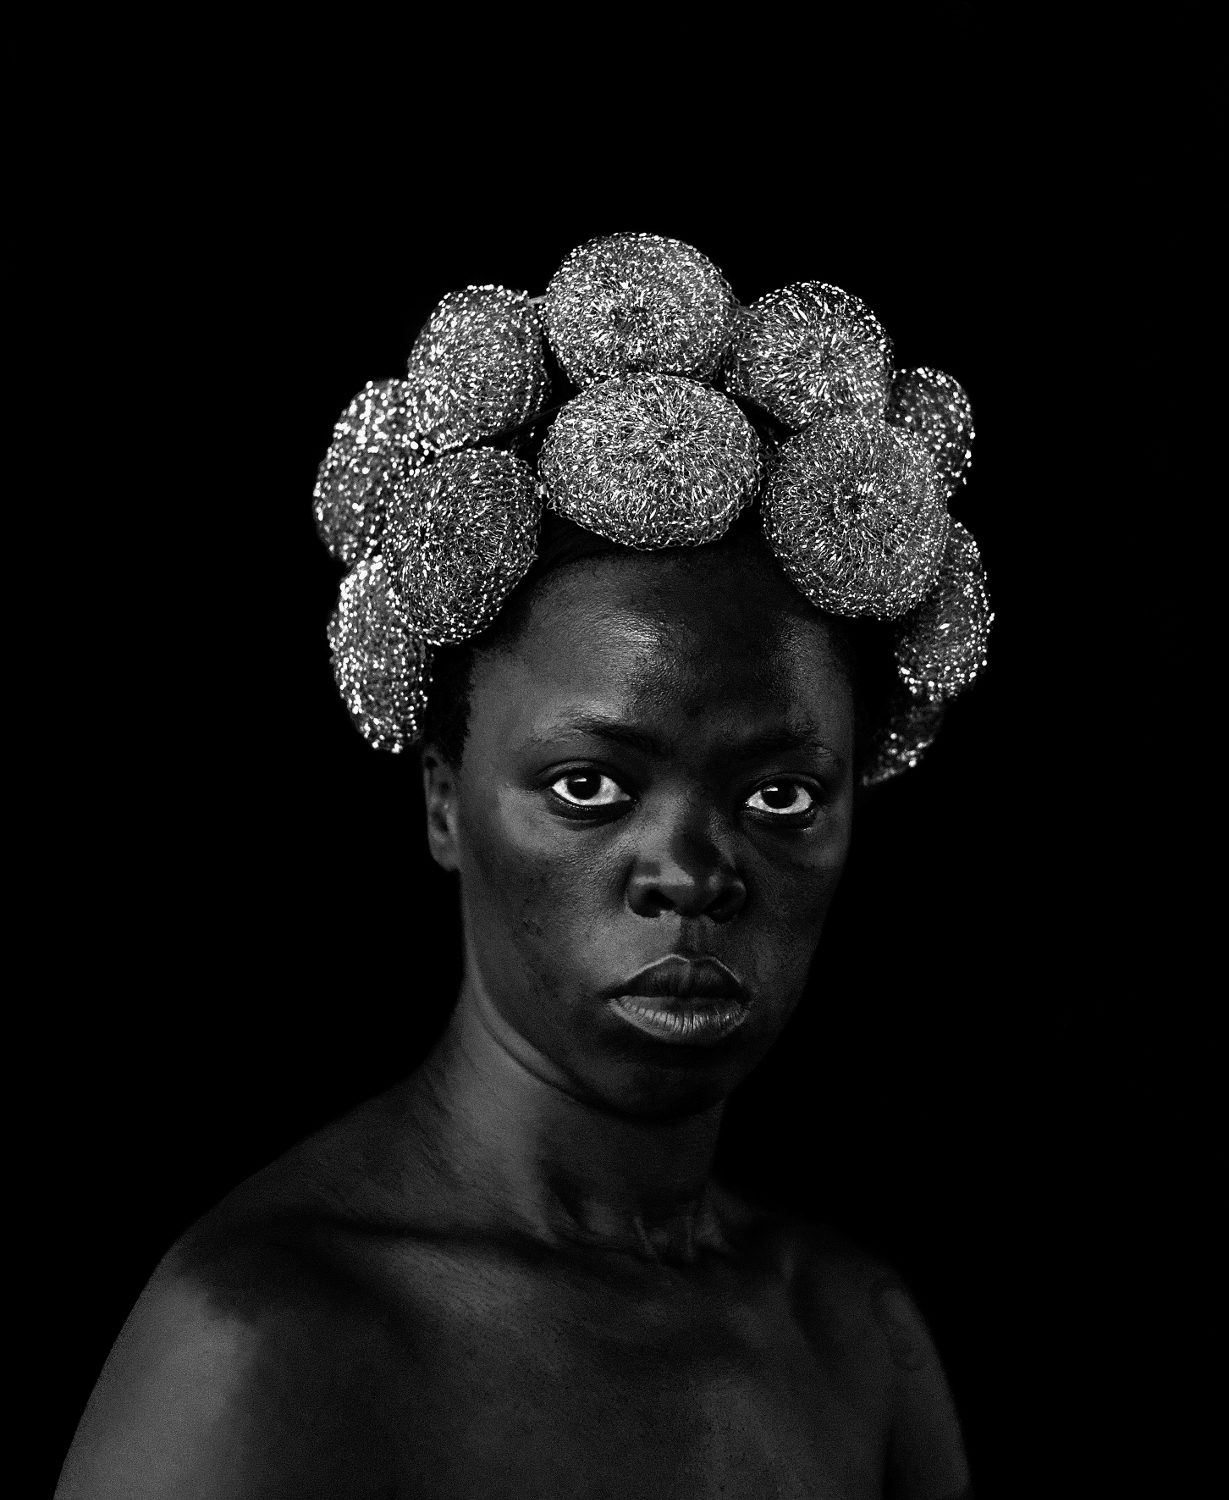 ZANELE MUHOLI – A photographic dialogue on gender identity, political issues and the portrayal of black women in Visual Culture